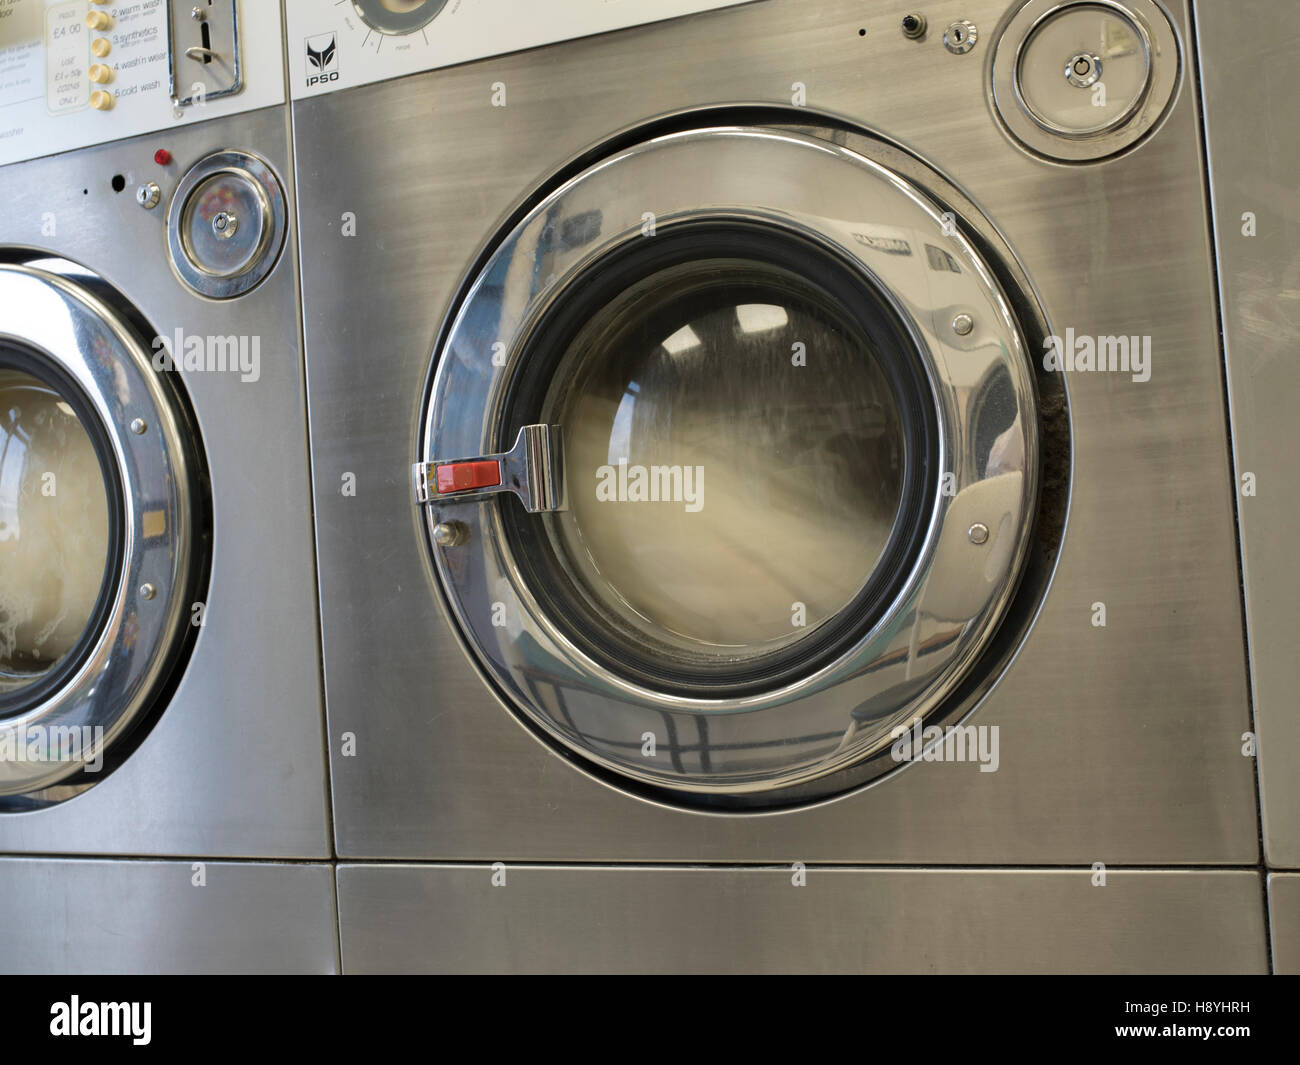 High resolution image of a working commercial washing